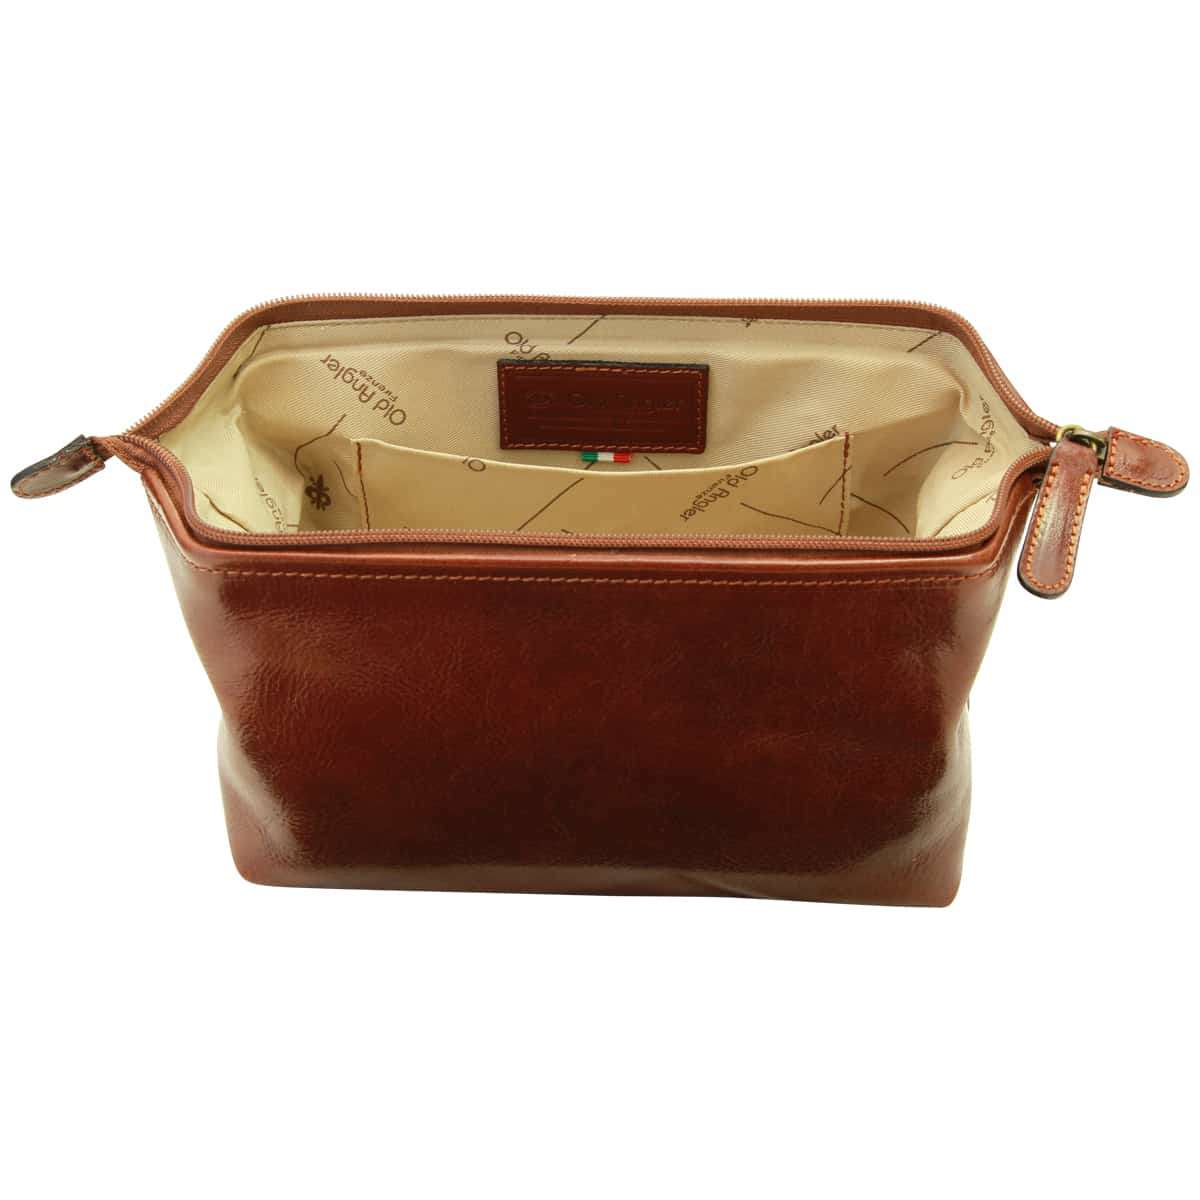 Cowhide beauty case - Brown | 401205MA UK | Old Angler Firenze